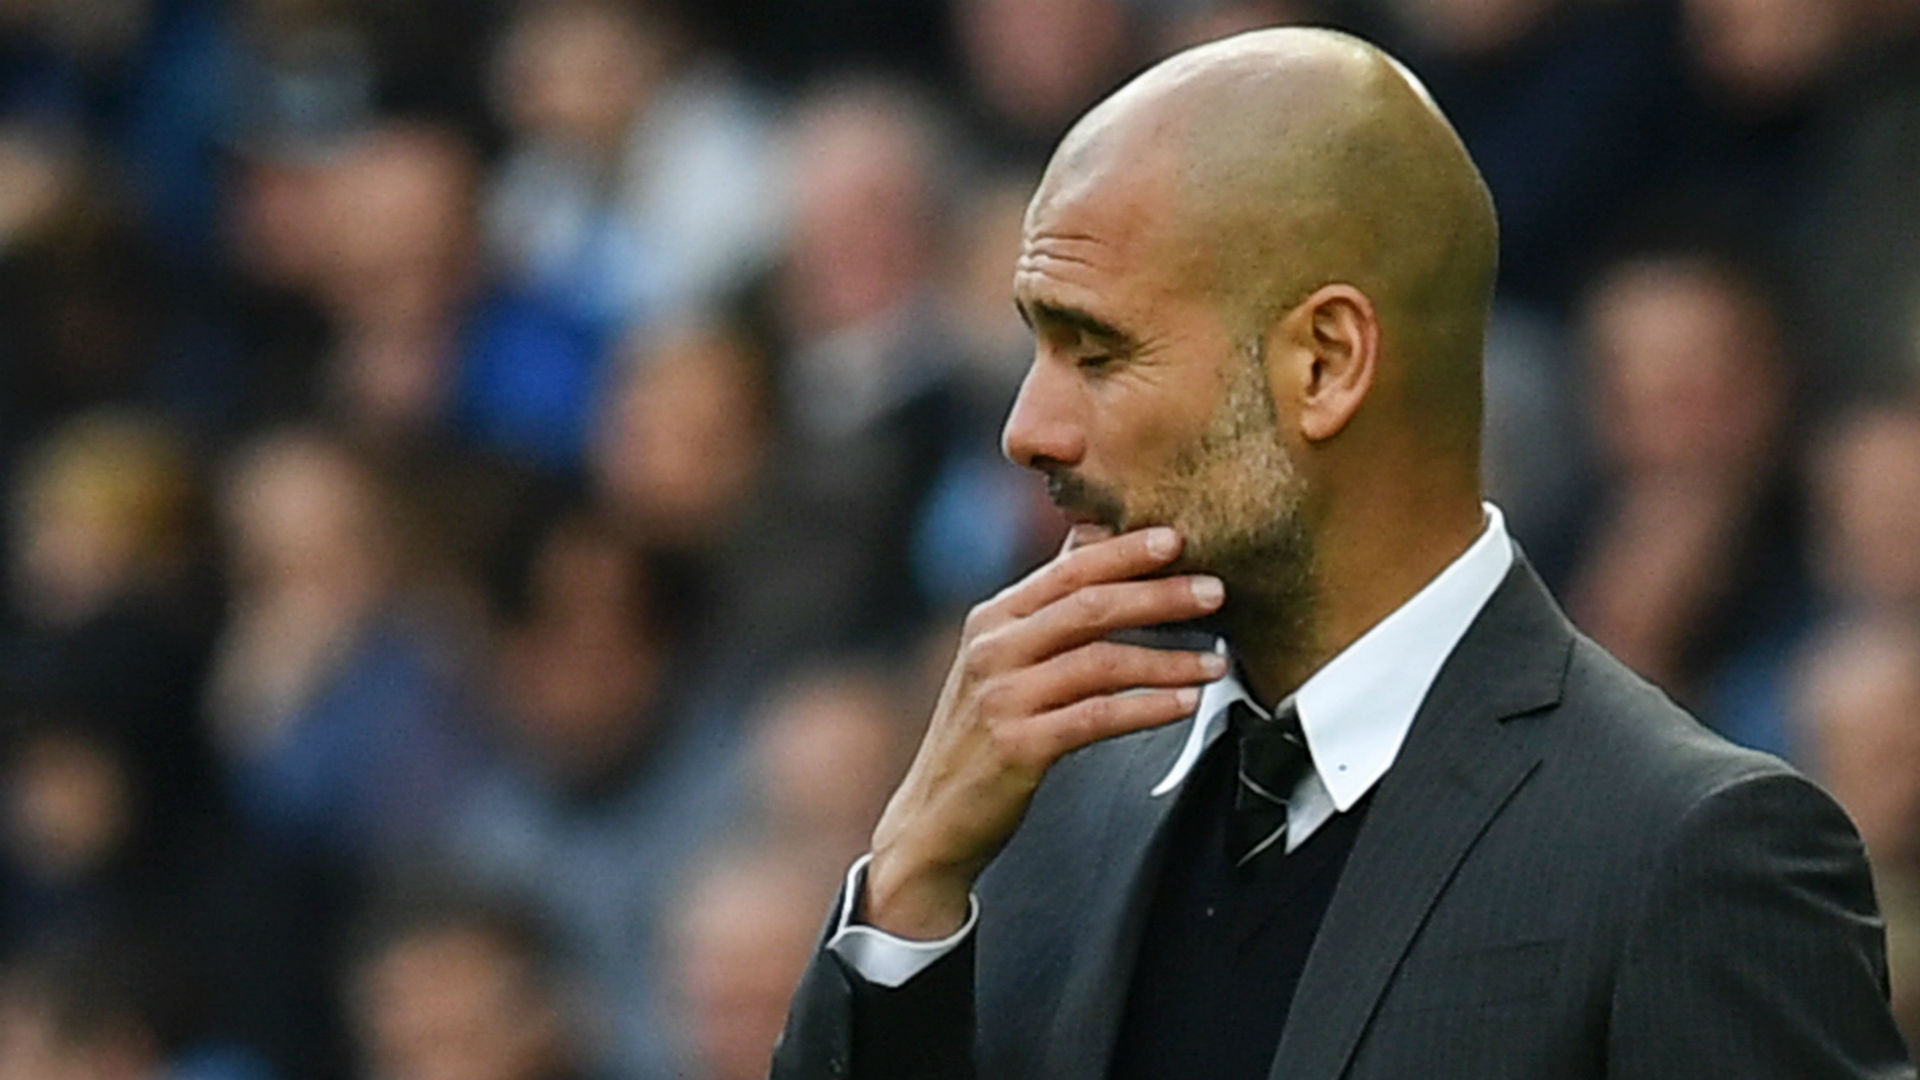 De Bruyne at right-back & Fernandinho everywhere - Manchester City through as Guardiola's tactics beguile and bewilder